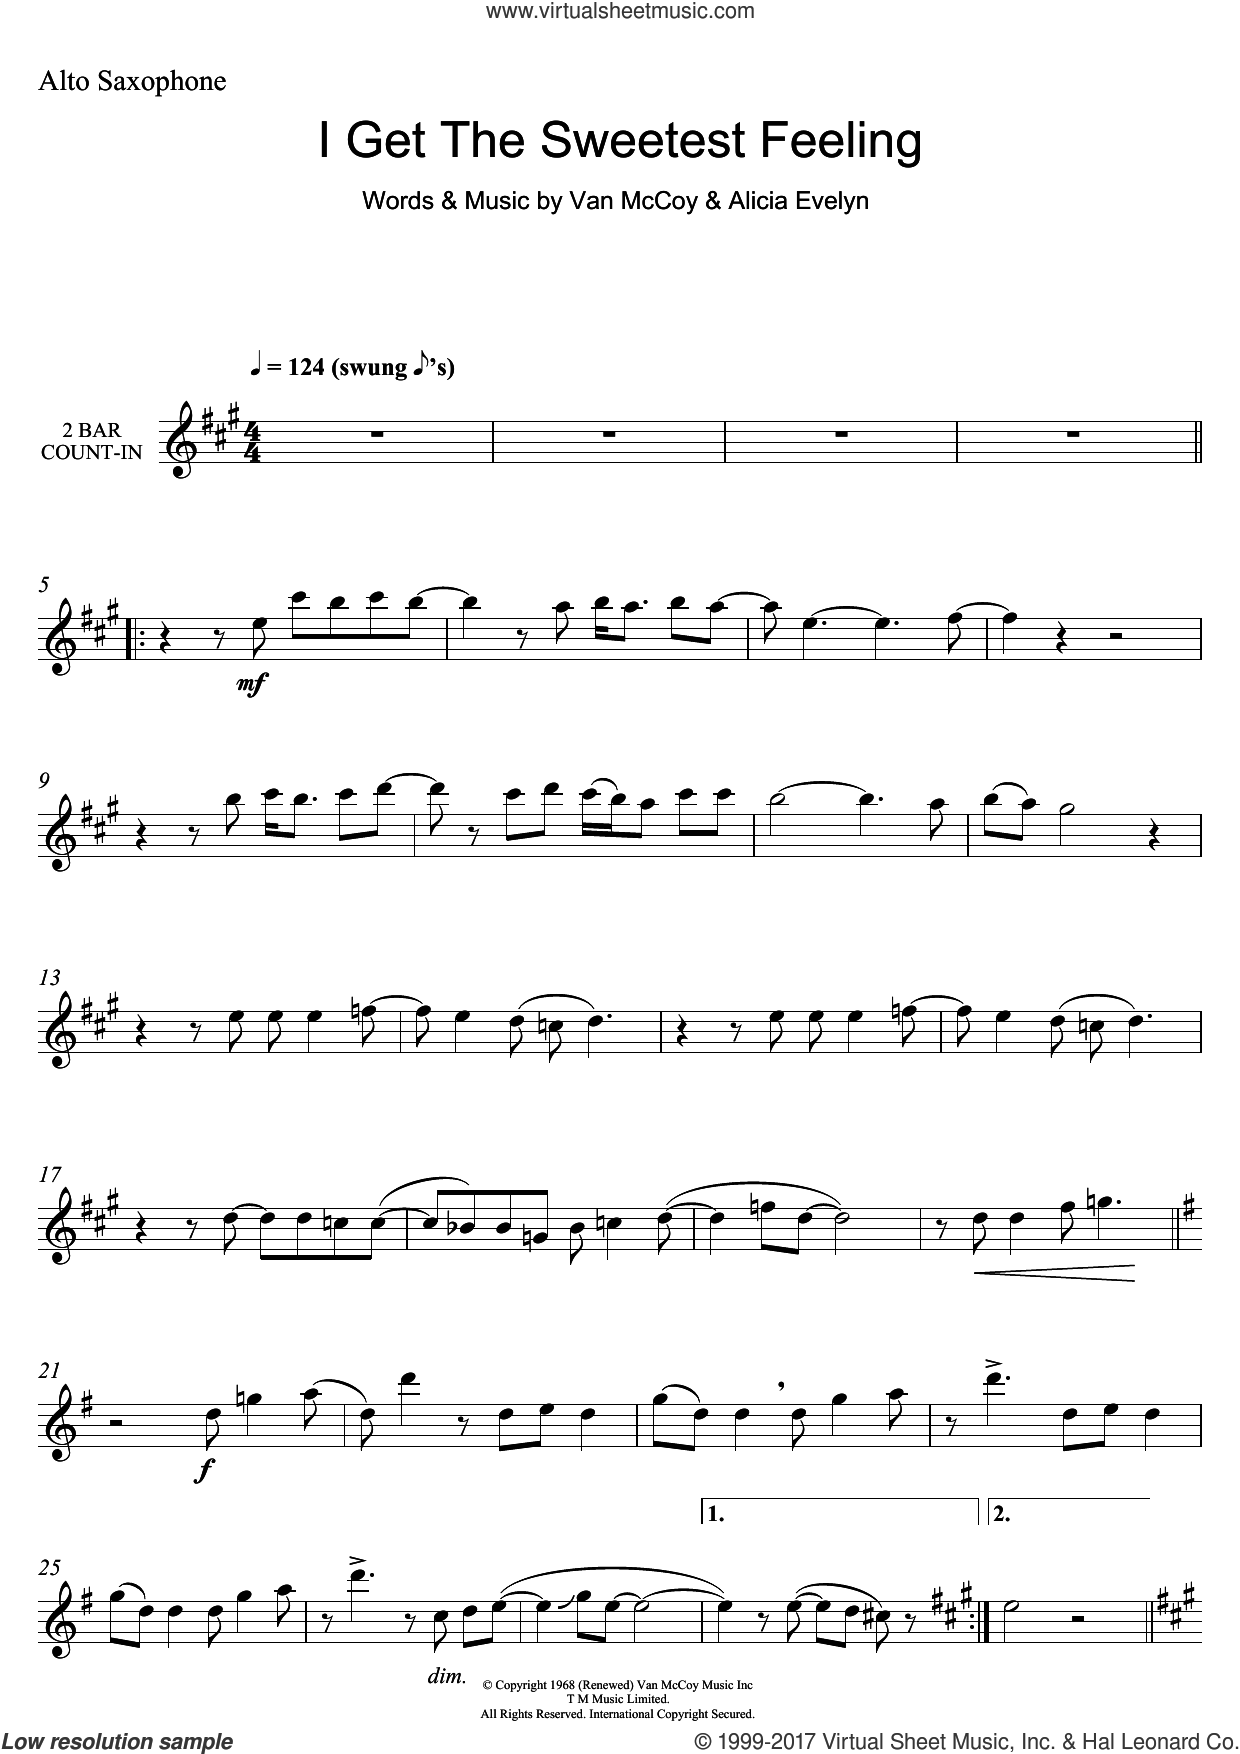 I Get The Sweetest Feeling sheet music for alto saxophone solo by Jackie Wilson, Alicia Evelyn and Van McCoy, intermediate skill level